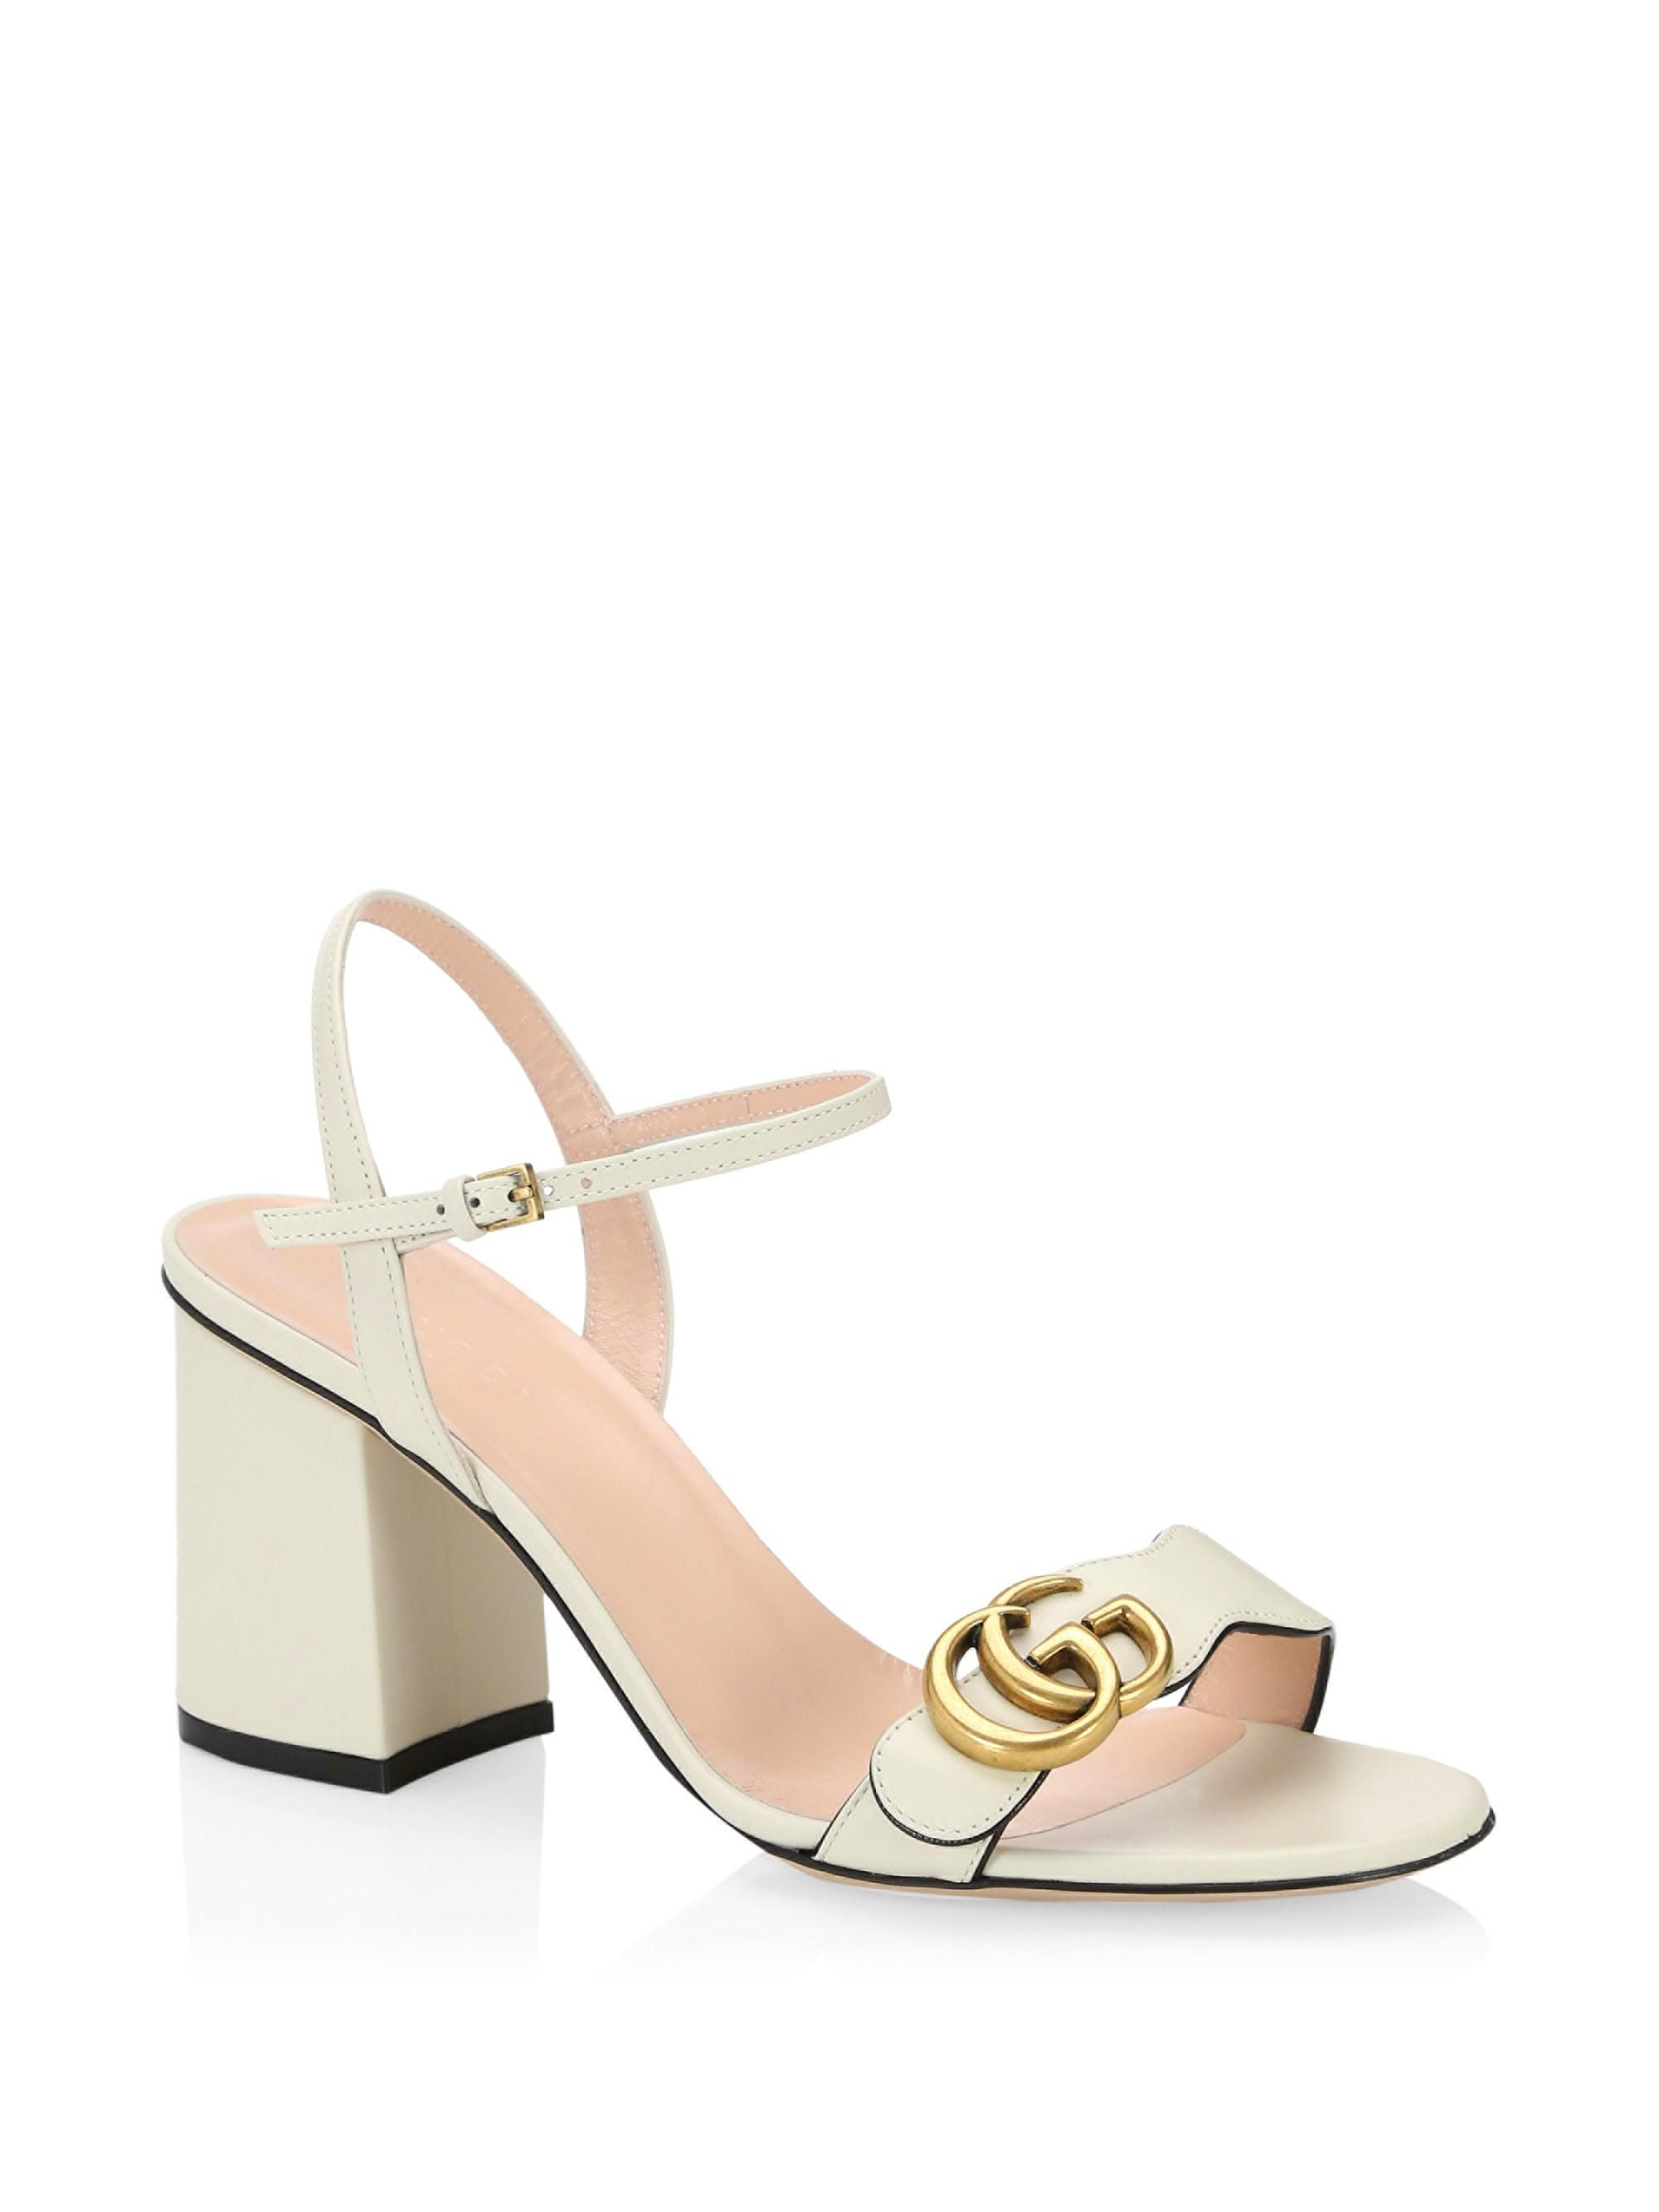 14a8cd8896b6 Gucci Marmont GG Ankle-strap Sandals - Lyst